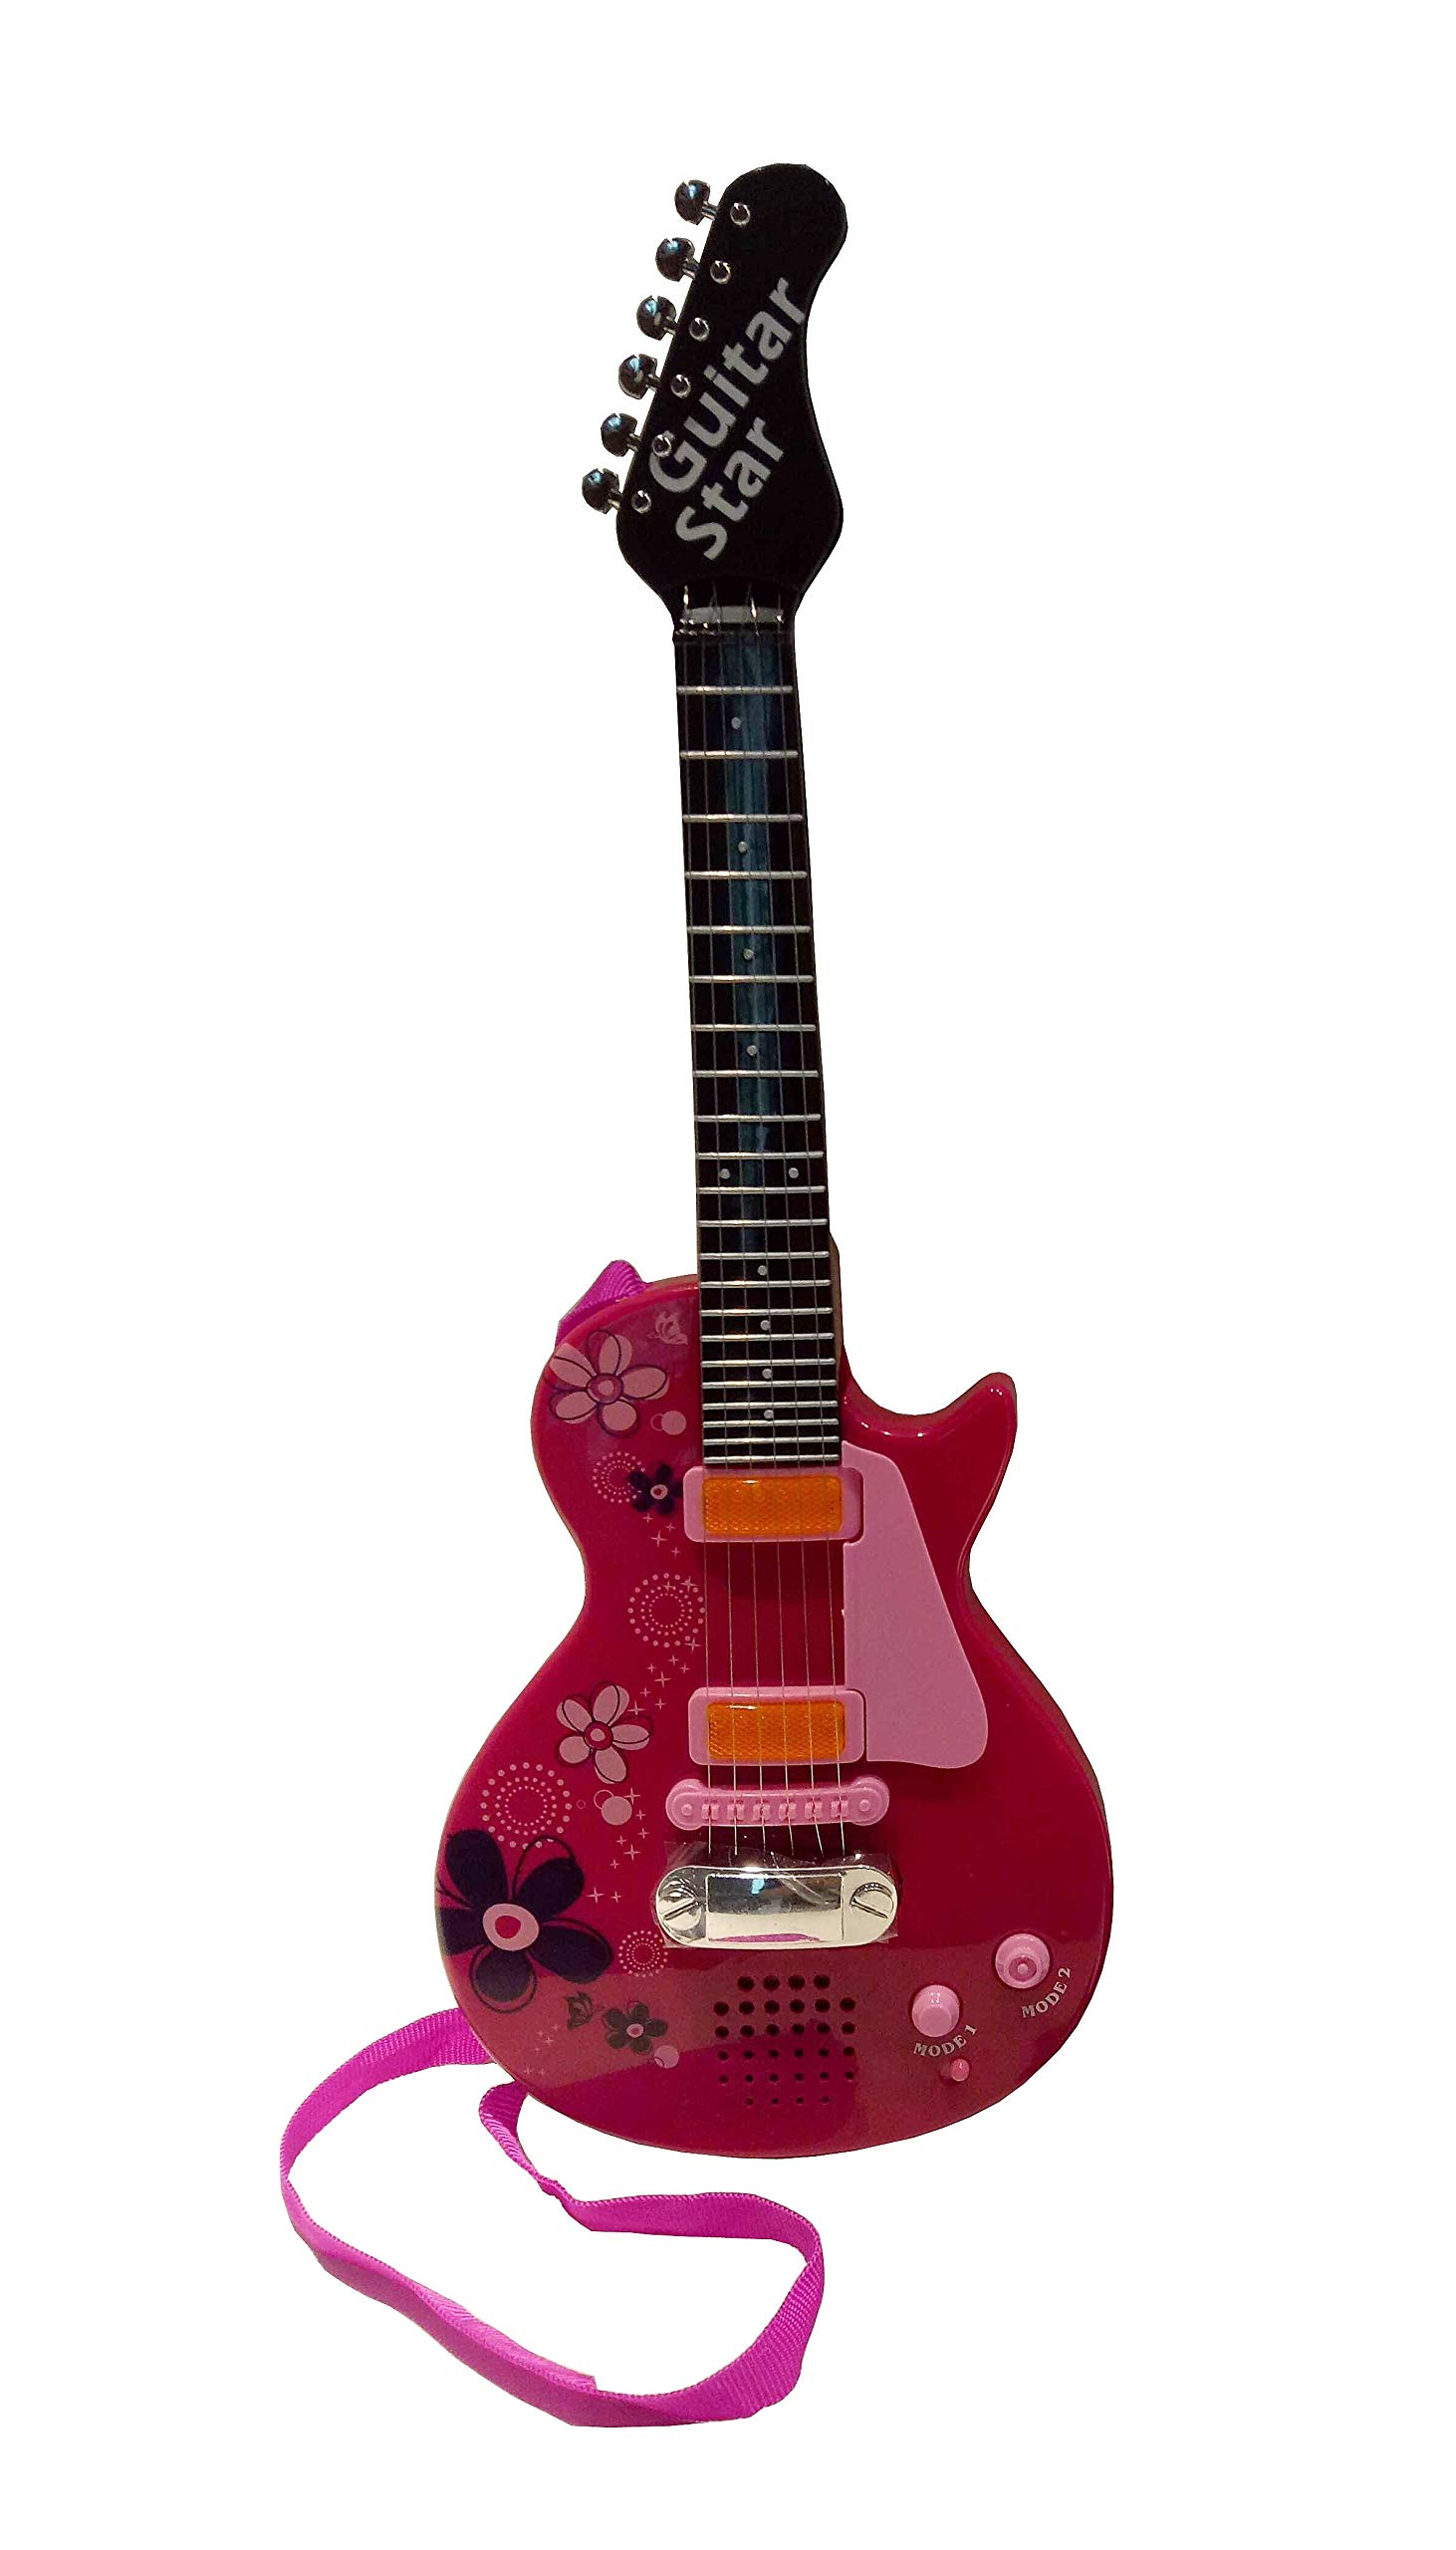 Sound Music and Light Fun Junior Guitar for Kids & beginners Great Gift Pink (Gui5862B) by Lightahead